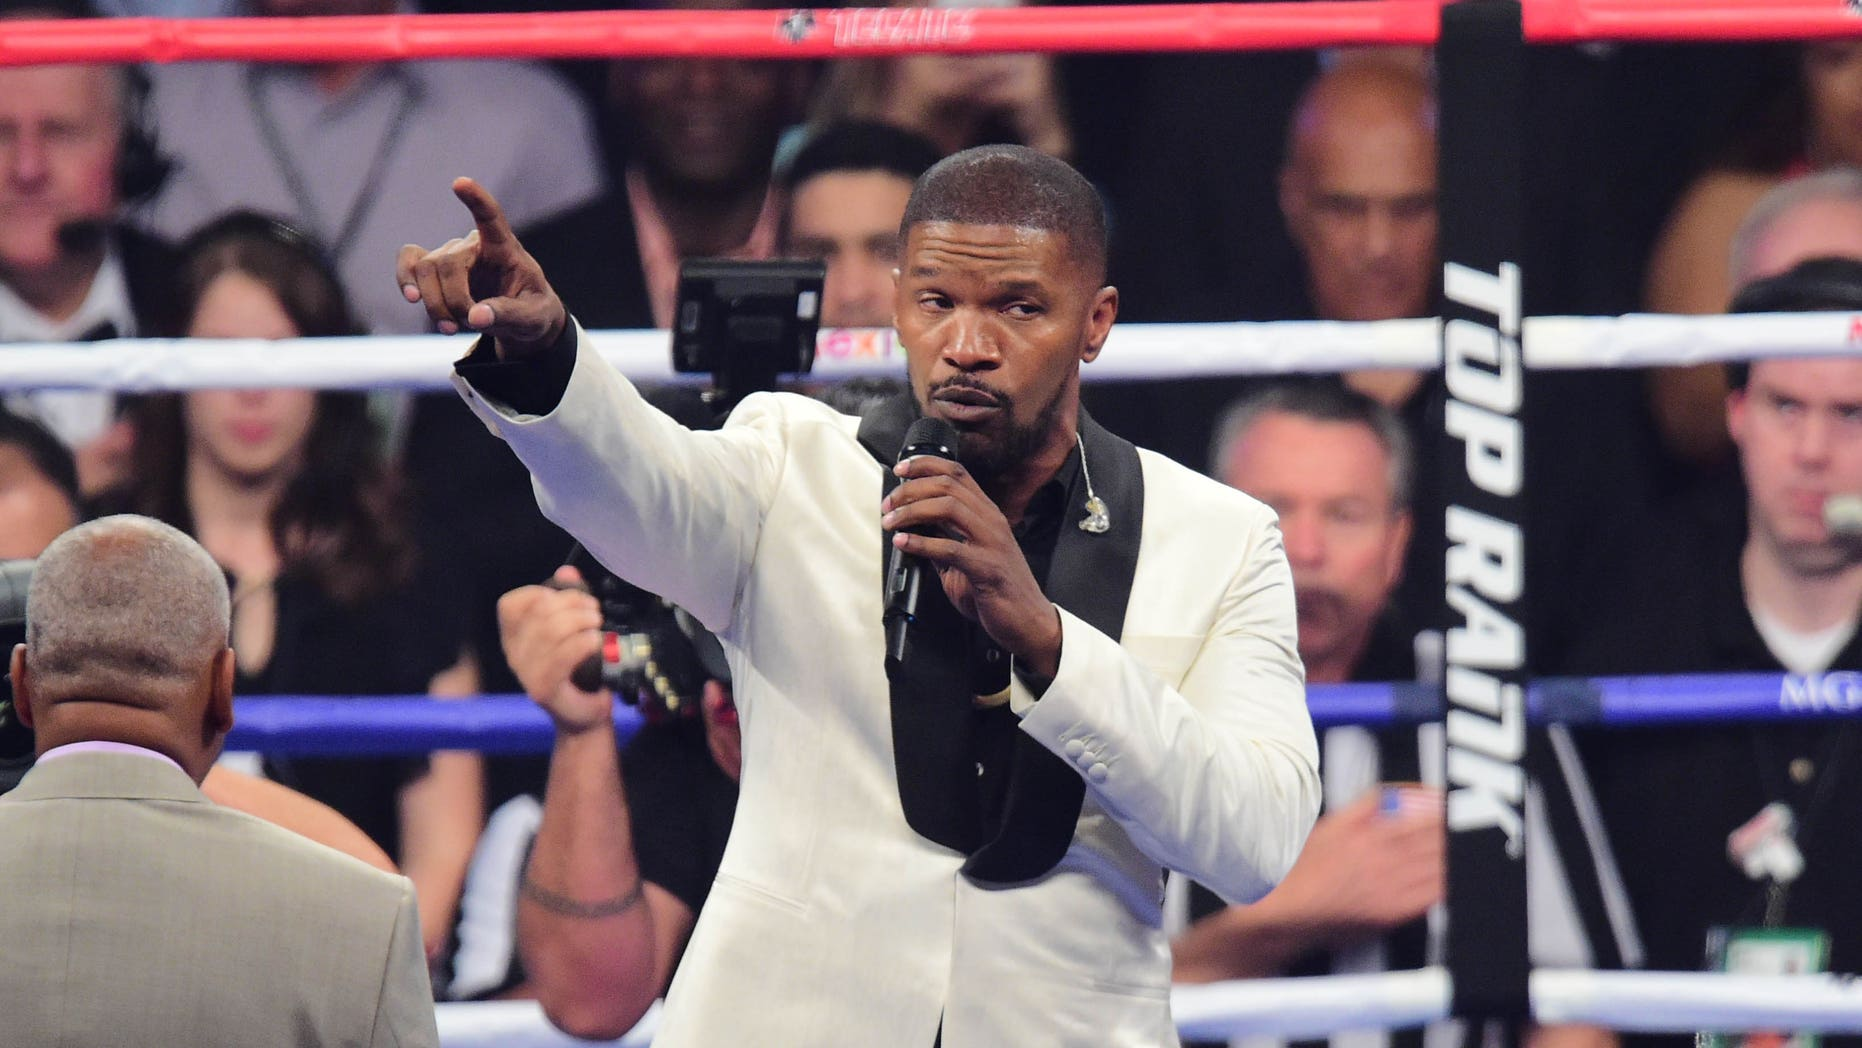 May 2, 2015. Movie actor Jamie Foxx sings the national anthem before the world welterweight championship bout between Floyd Mayweather and Manny Pacquiao at MGM Grand Garden Arena in Las Vegas.